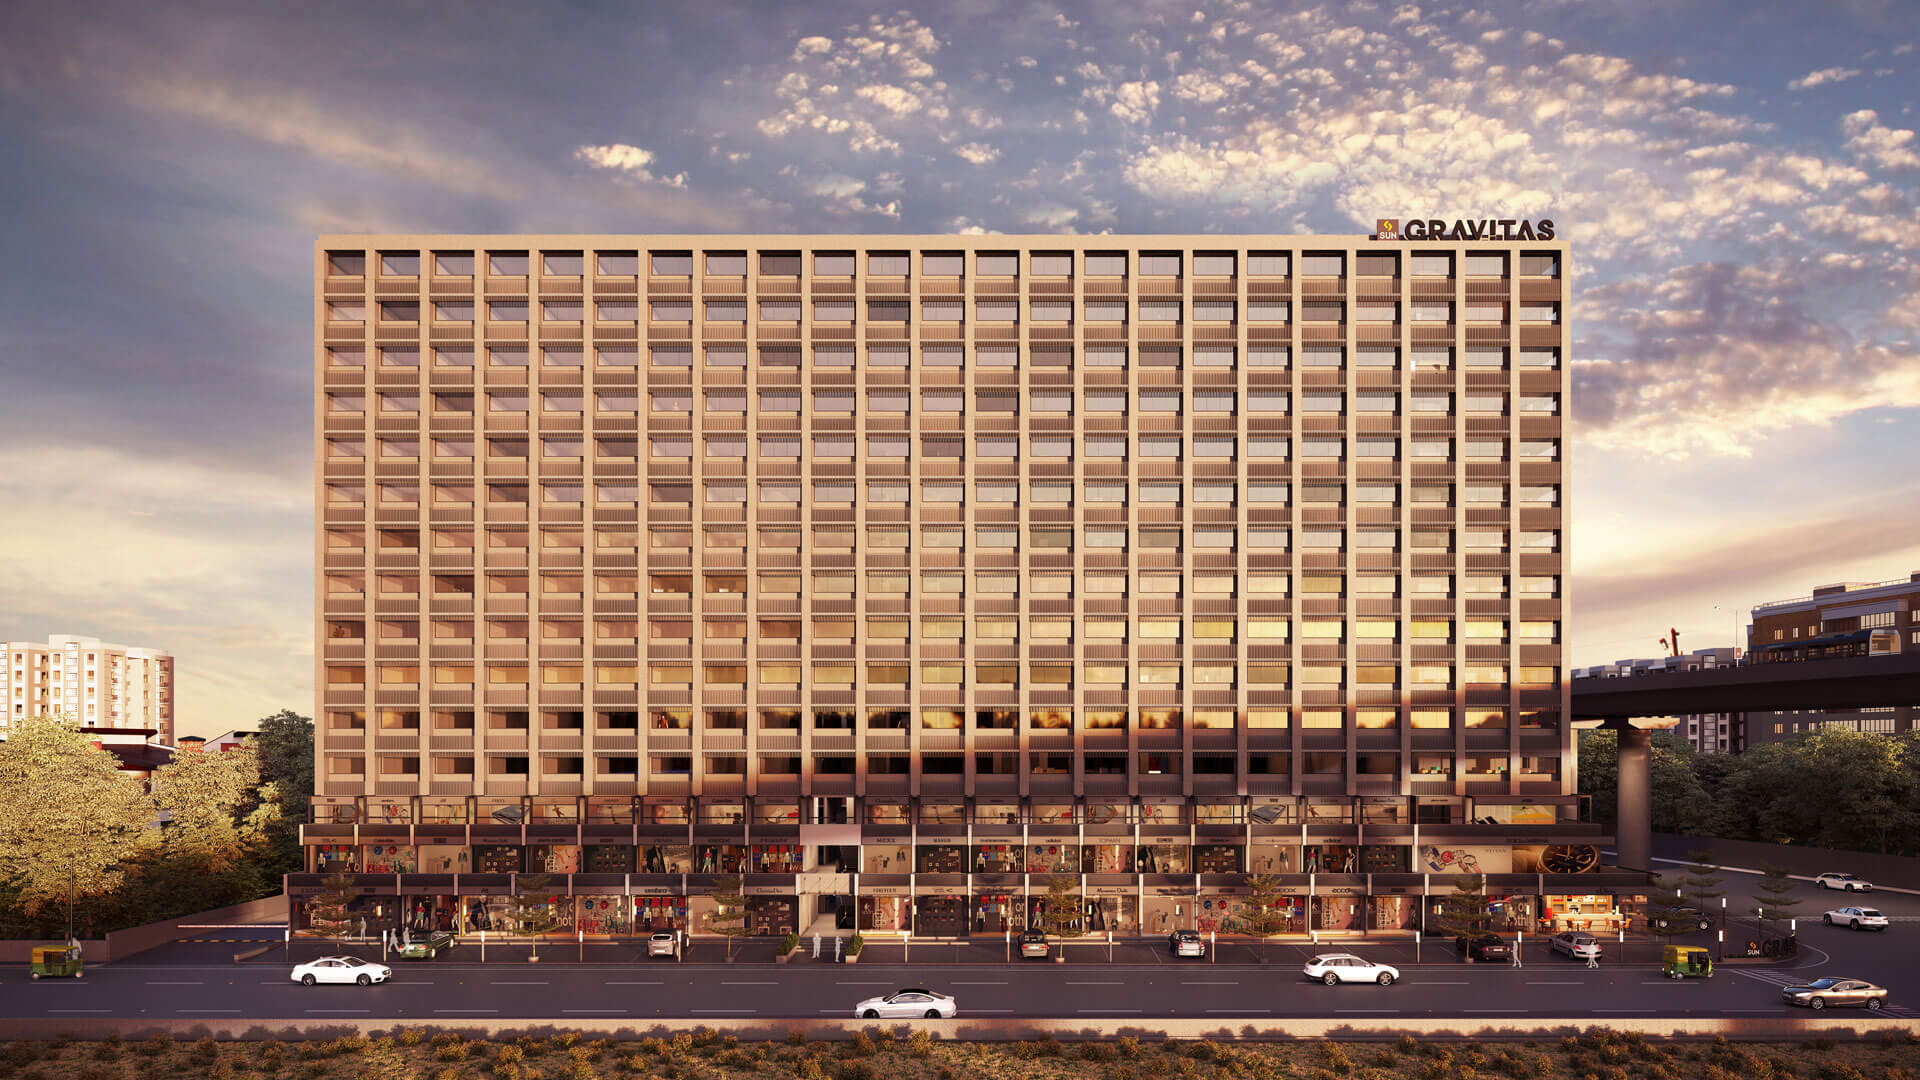 Sun Gravitas - Under construction projects in Ahmedabad